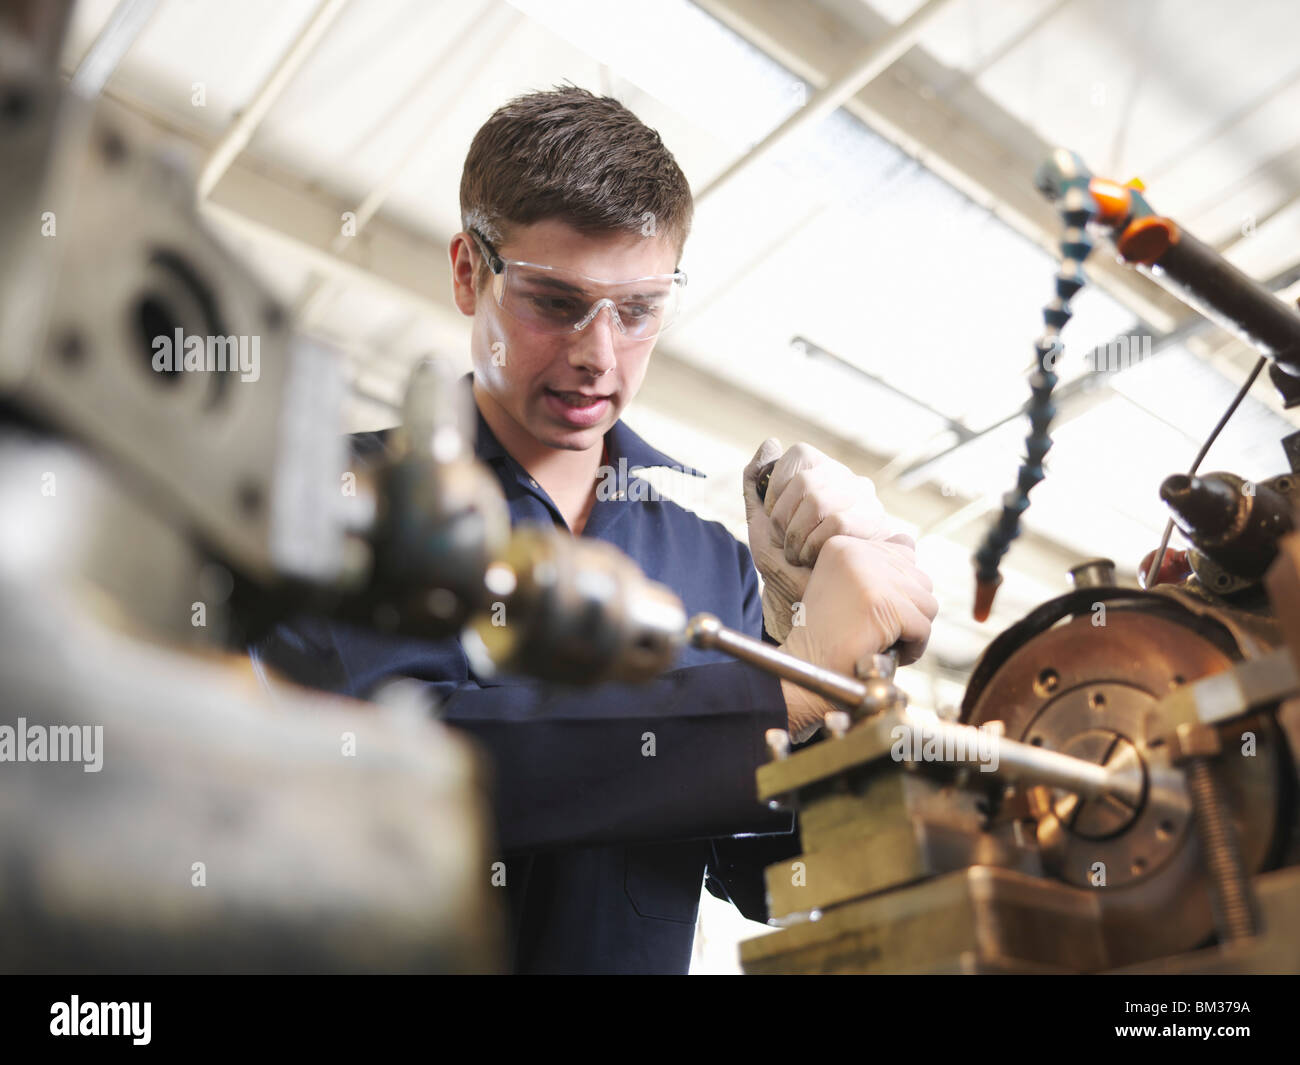 Apprentice Working With Lathe - Stock Image